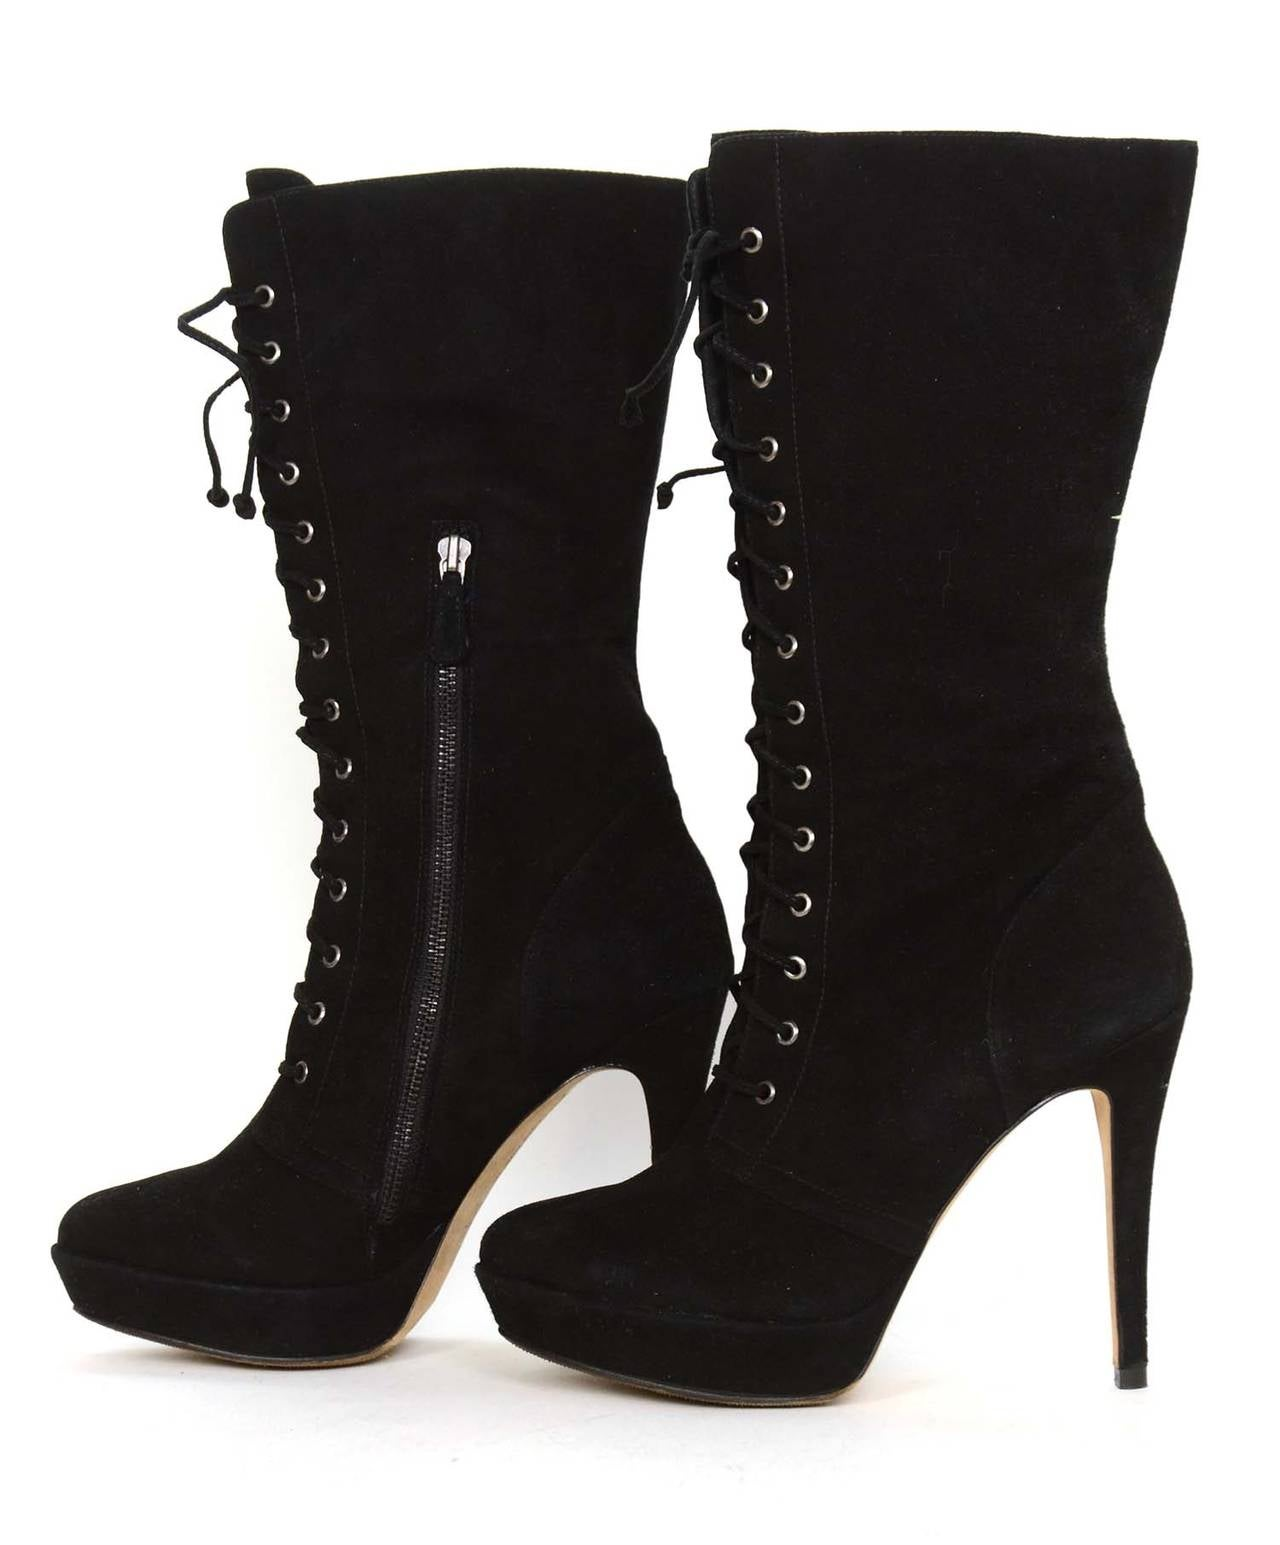 alexandre birman black suede lace up heeled boots sz 10 5